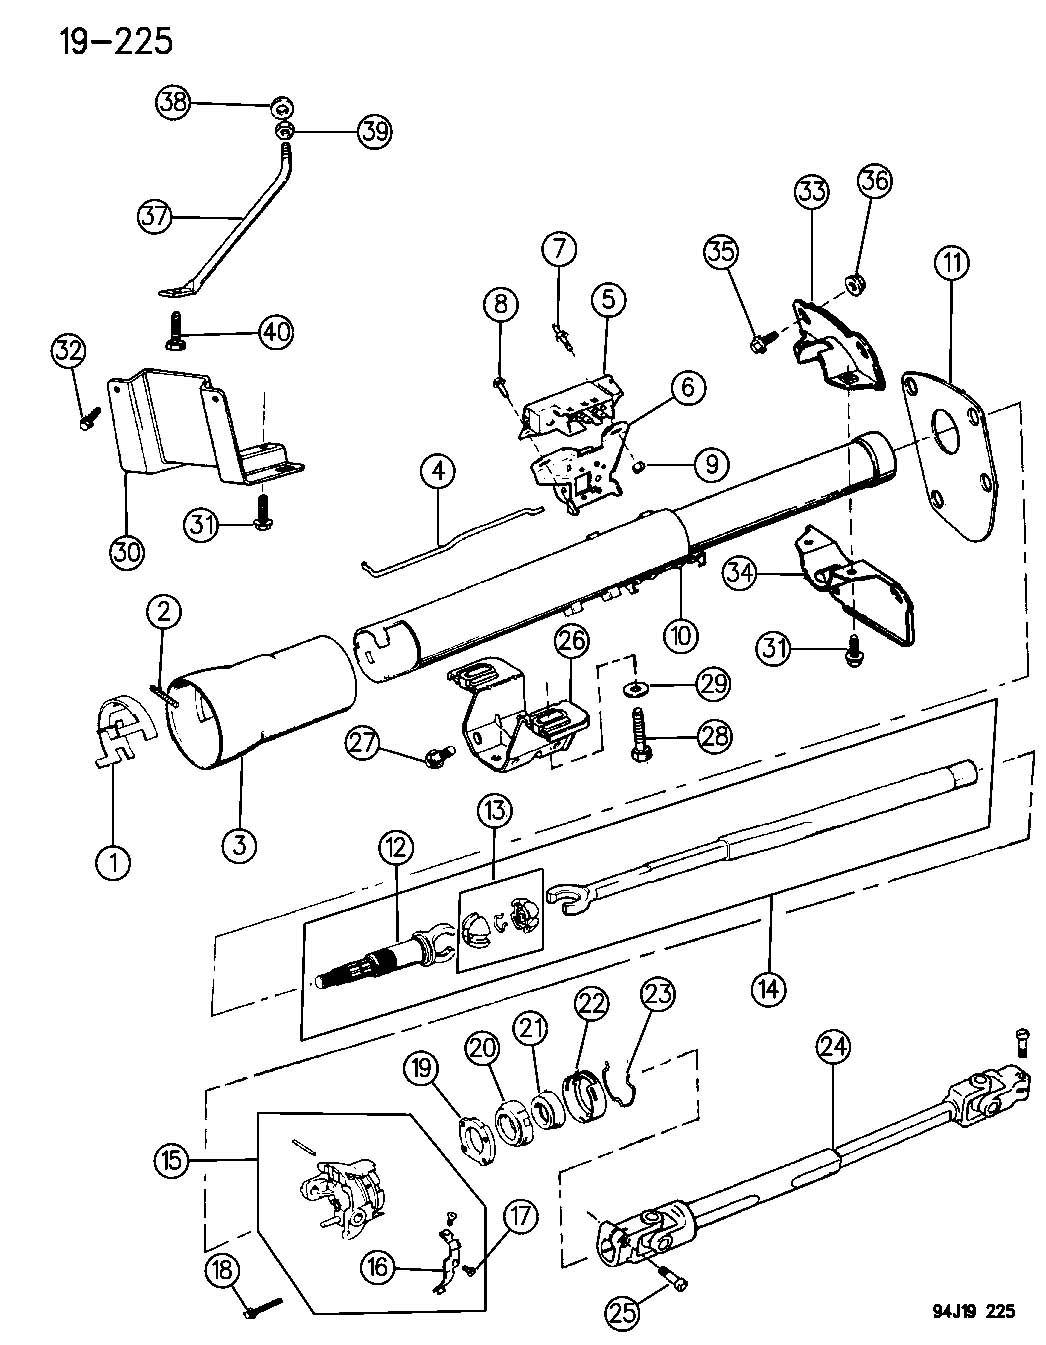 Jeep Wrangler Front Diagram Jeep Free Engine Image For